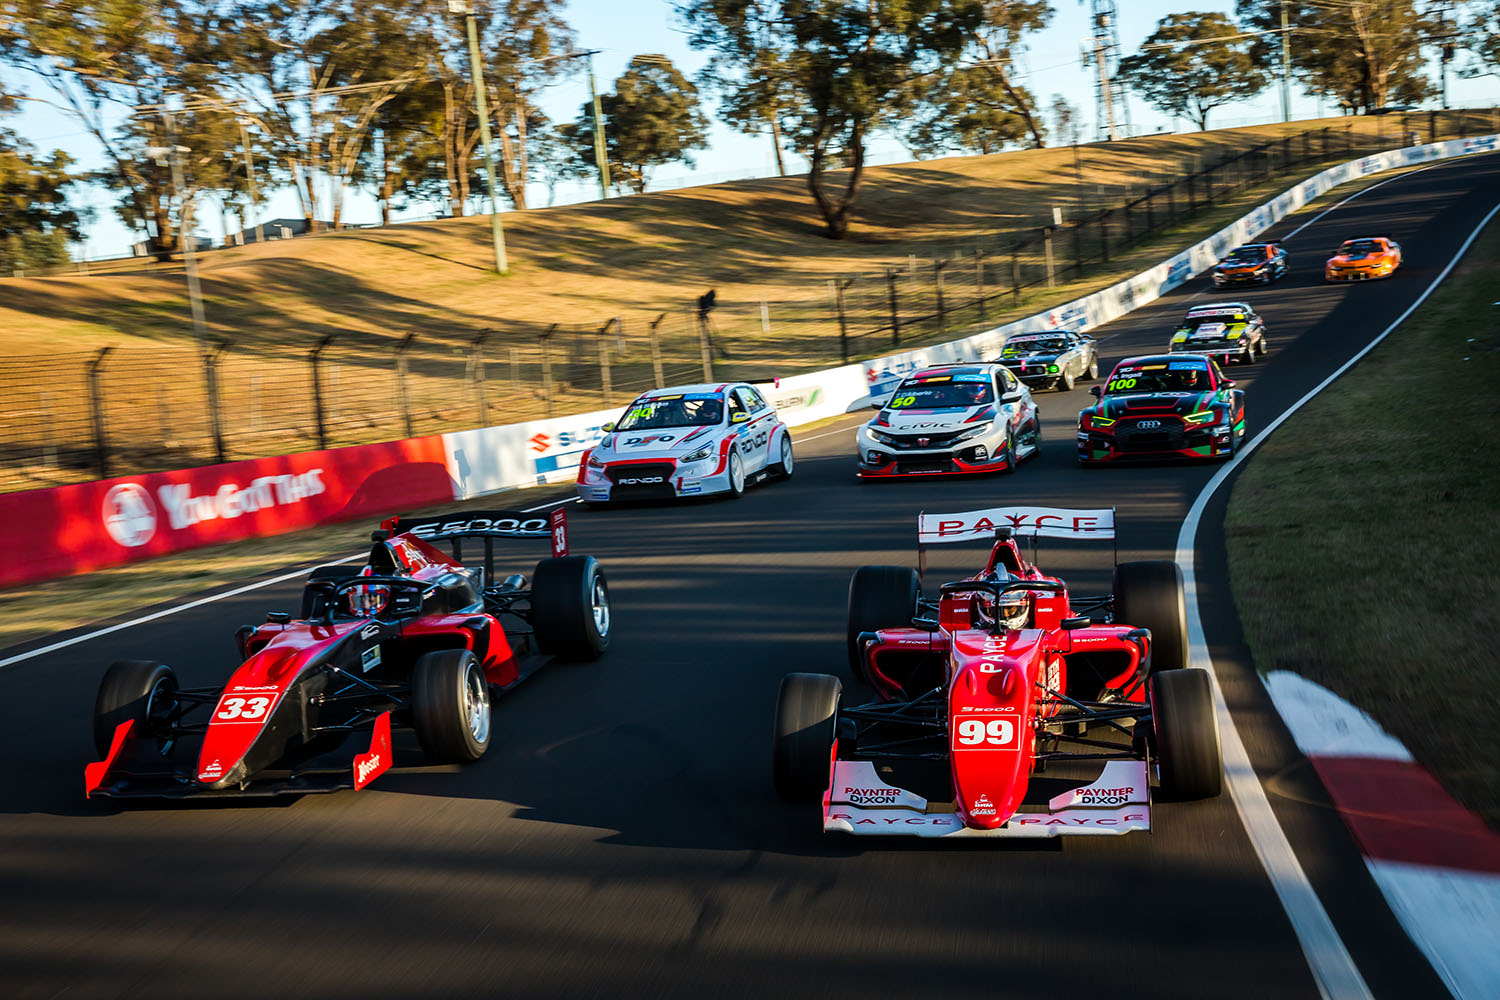 Date confirmed for the inaugural Bathurst International at Mount Panorama